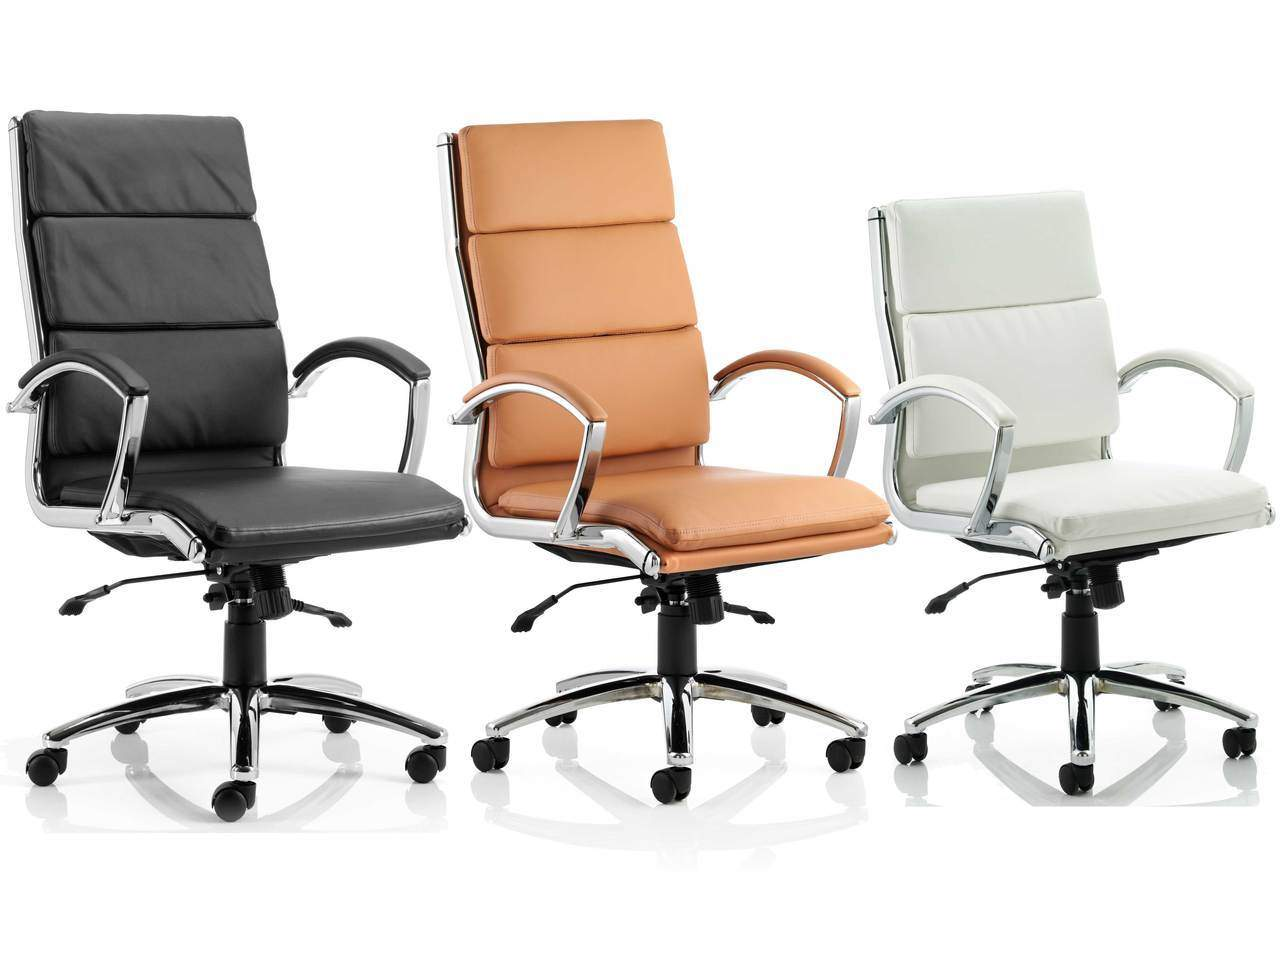 Tan Office Chair Classic Leather Executive Office Chair Rapid Office